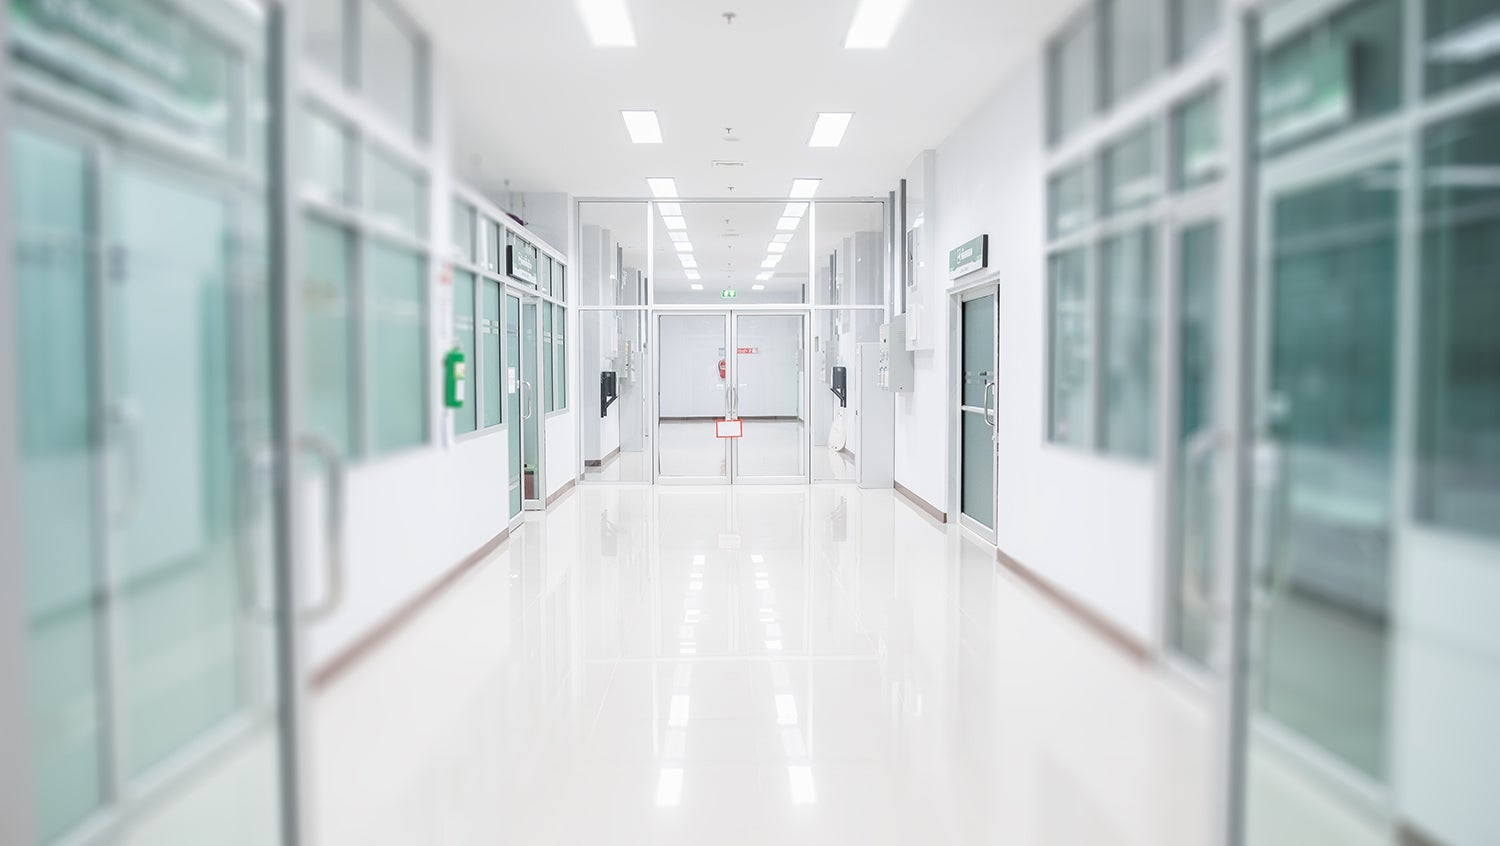 Empty and clean white hospital hallway